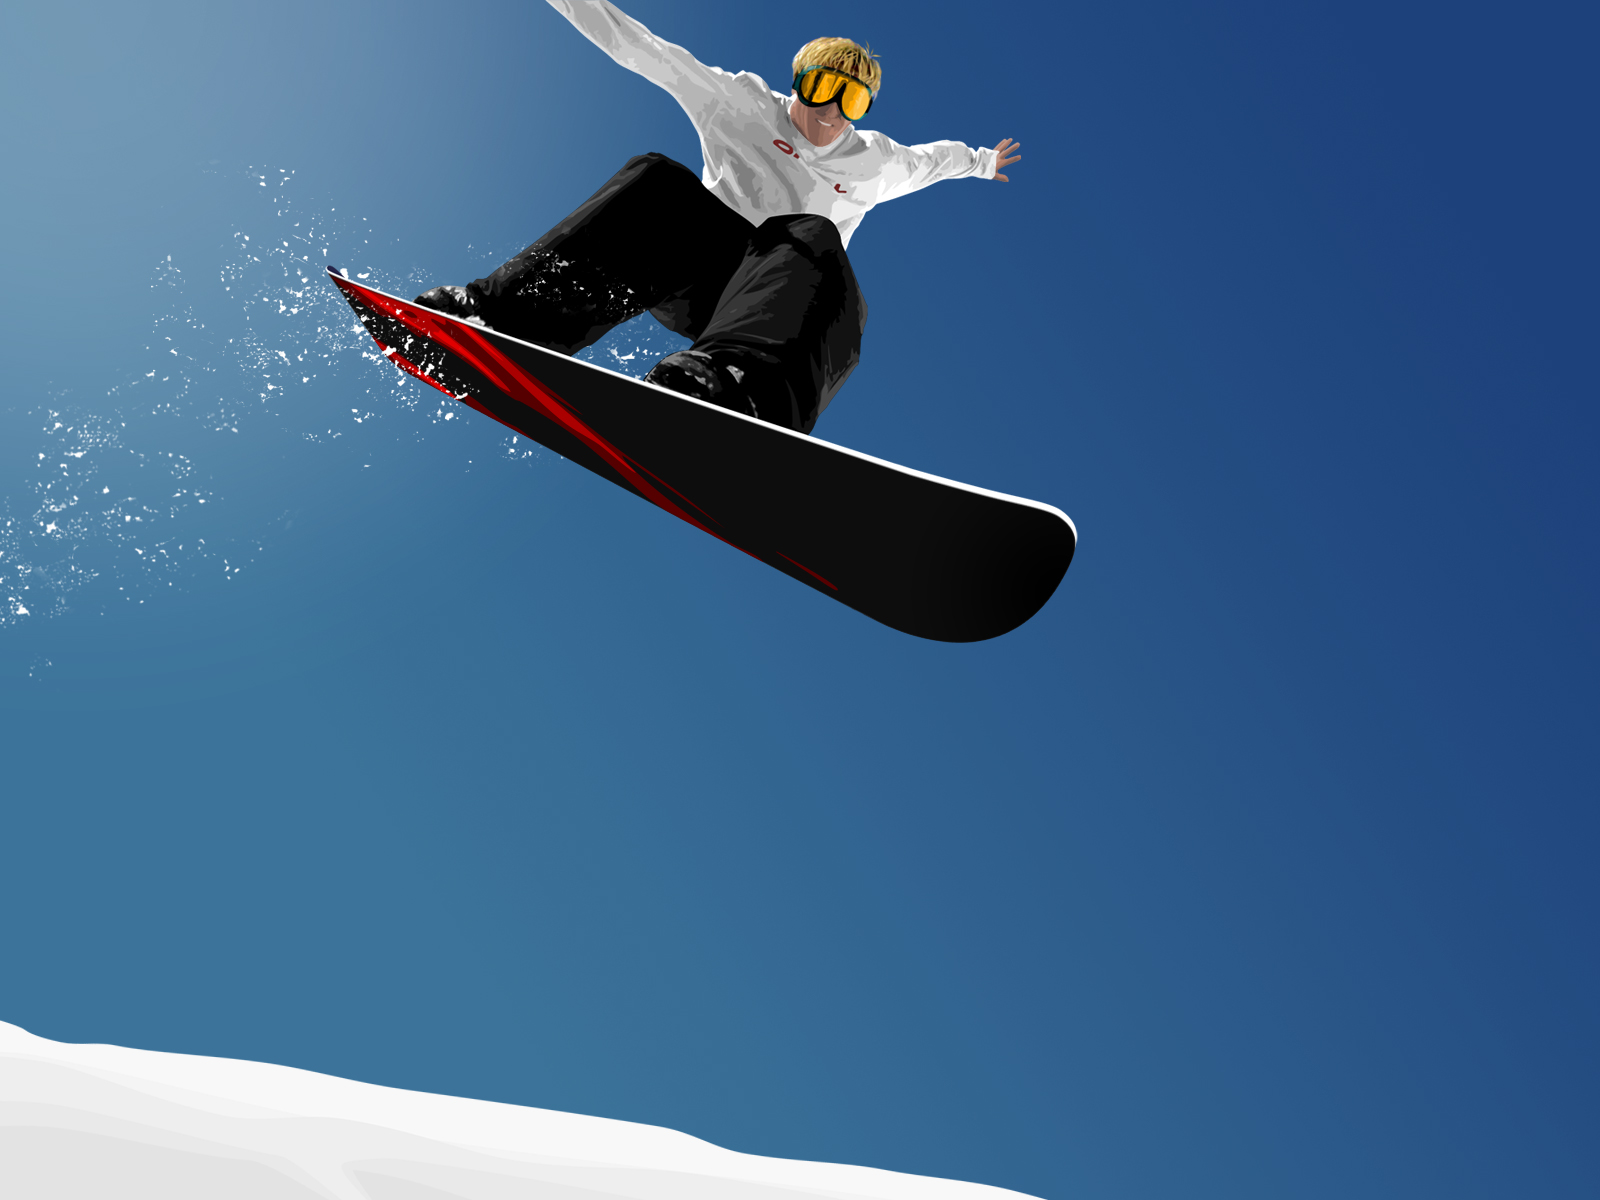 1600x1200 Snowboard jump desktop wallpapers and stock photos